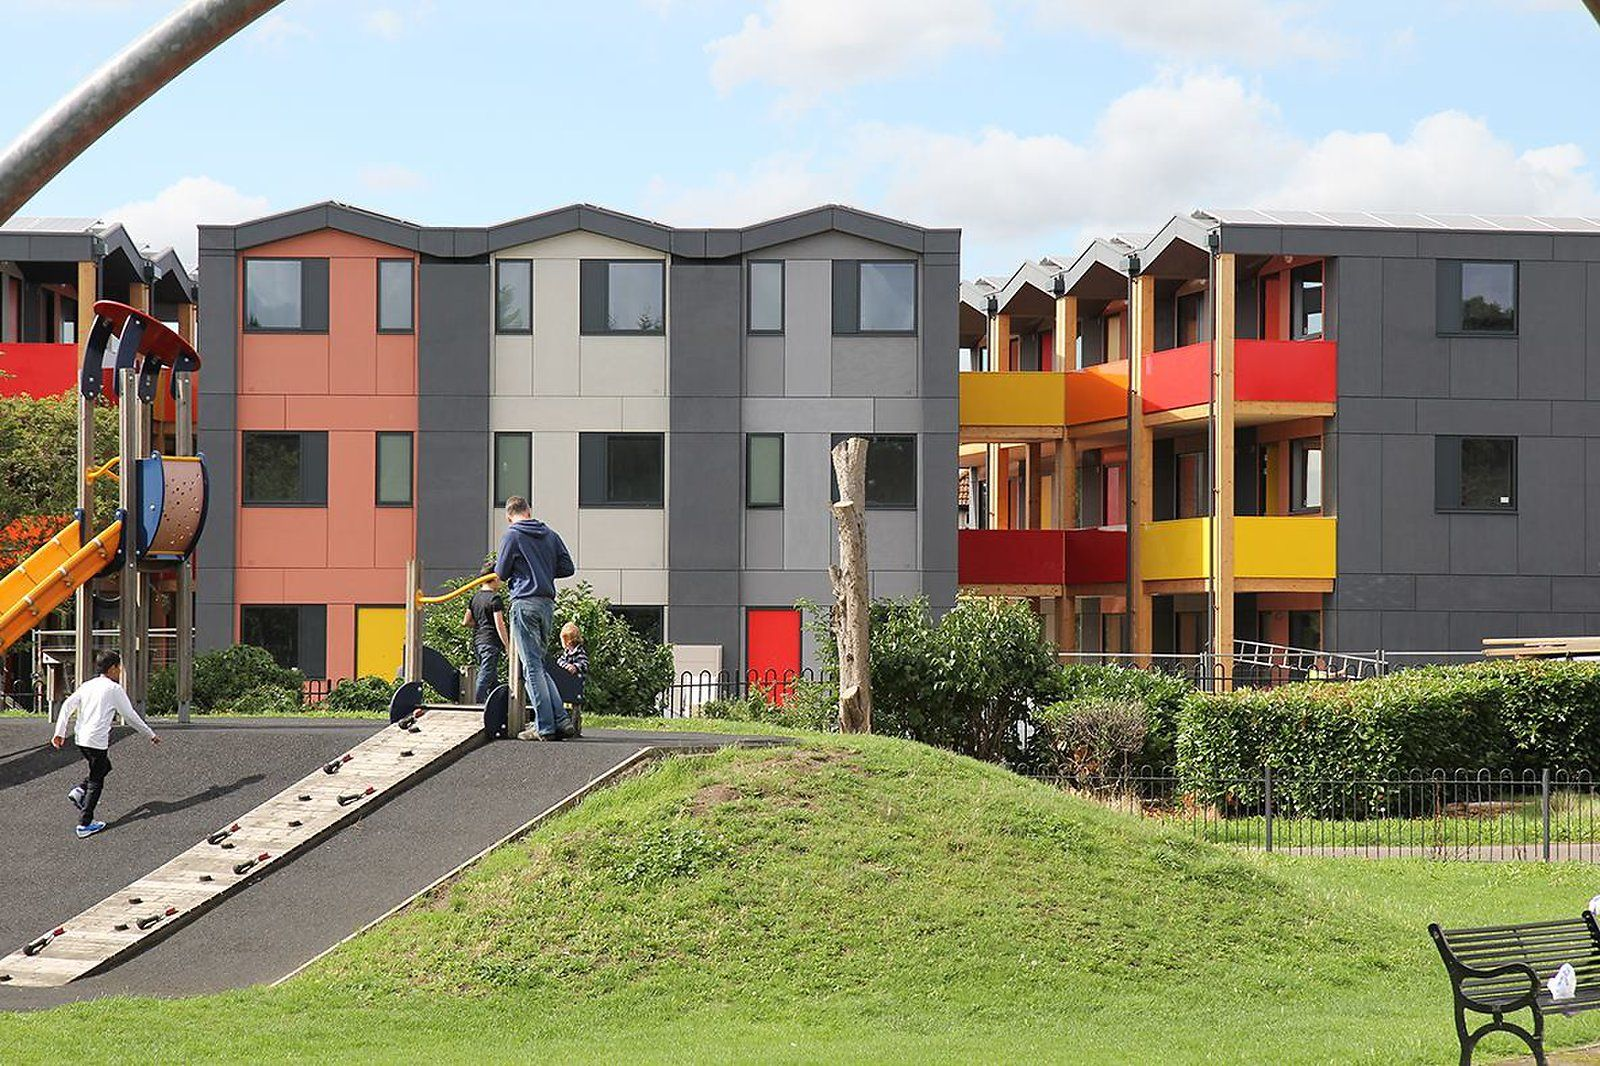 The Colorful Stackable Apartments Built For The Homeless Building Prefab Cabins Urban Planning